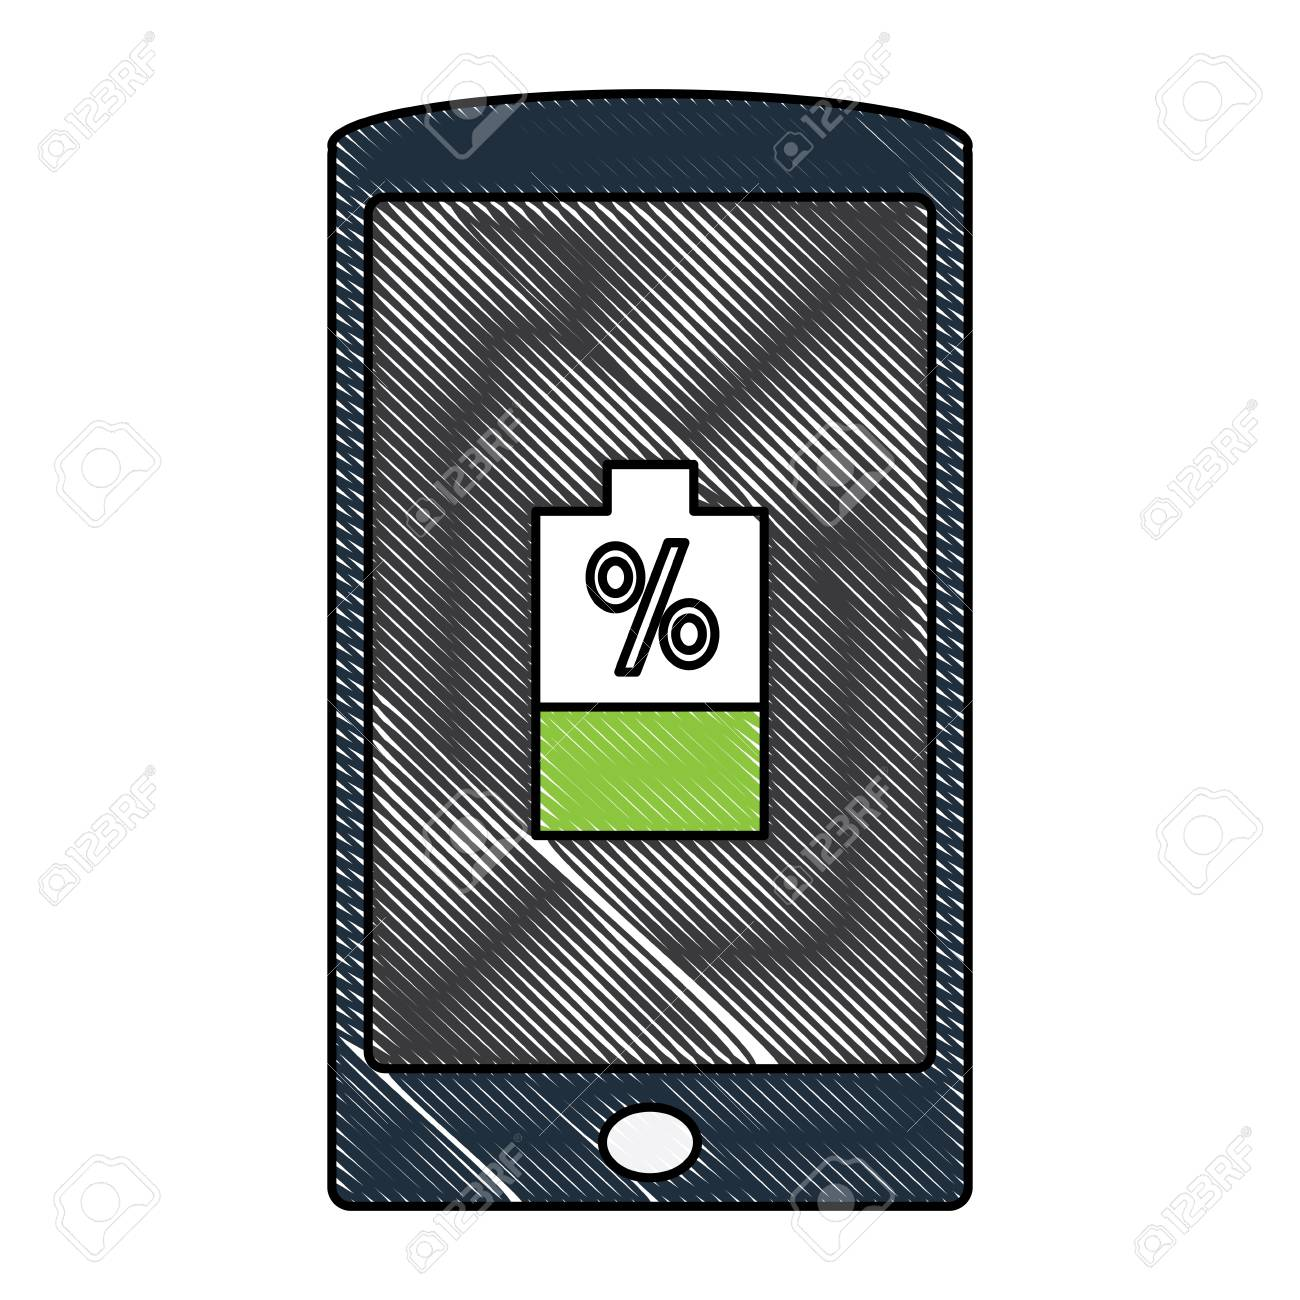 Smartphone Device With Battery Percent Over White Background Royalty Free Cliparts Vectors And Stock Illustration Image 95614762